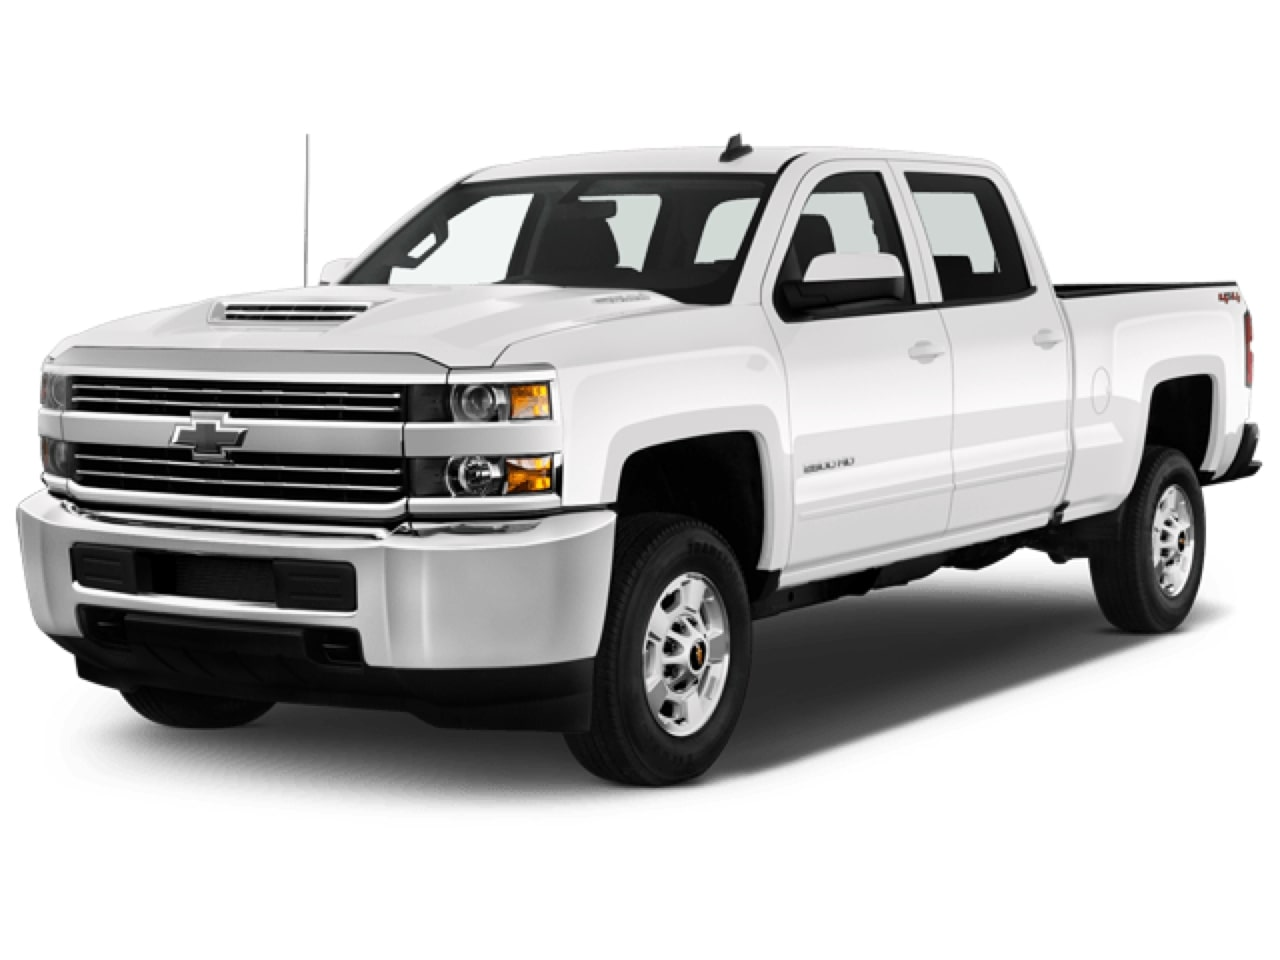 Listing All Trucks >> Autolist Search New And Used Cars For Sale Compare Prices